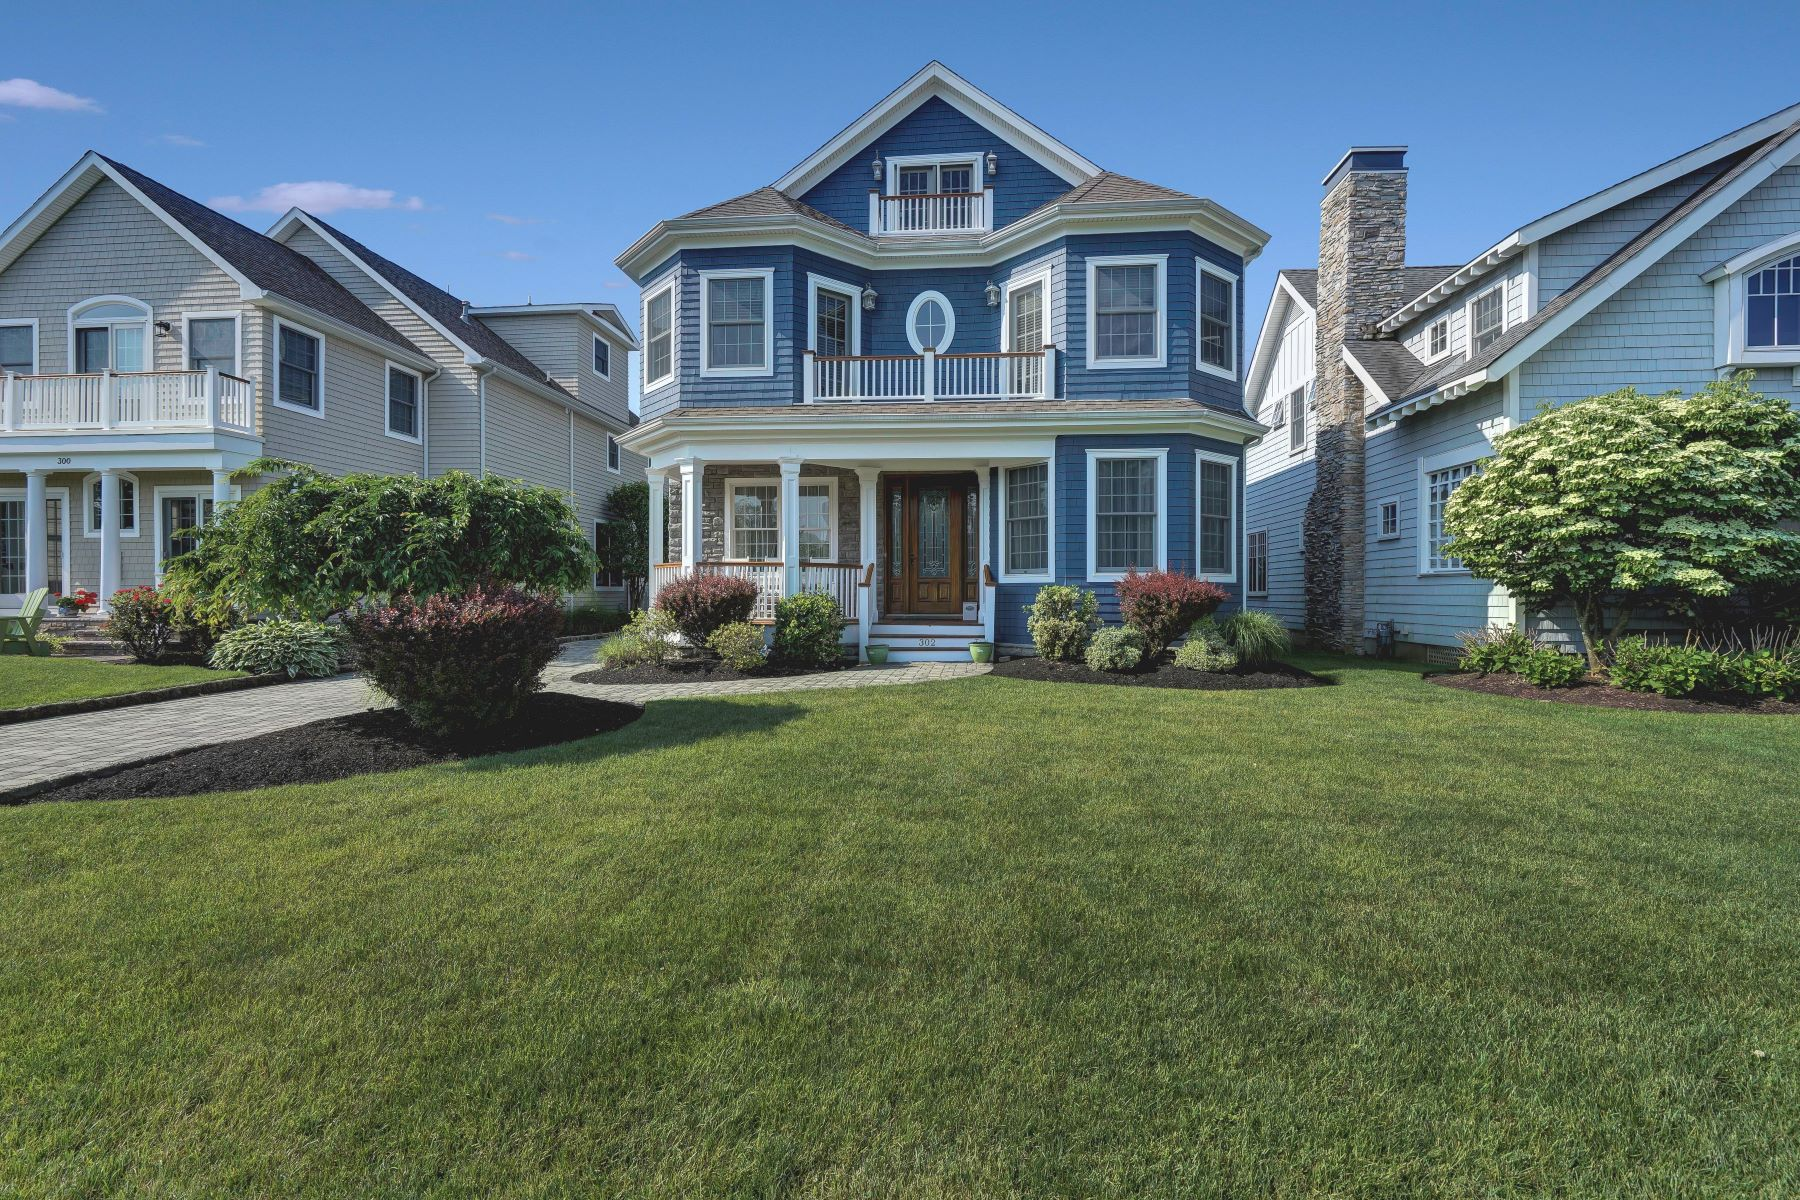 Single Family Homes for Active at Casual Elegance 302 Beacon Boulevard Sea Girt, New Jersey 08750 United States